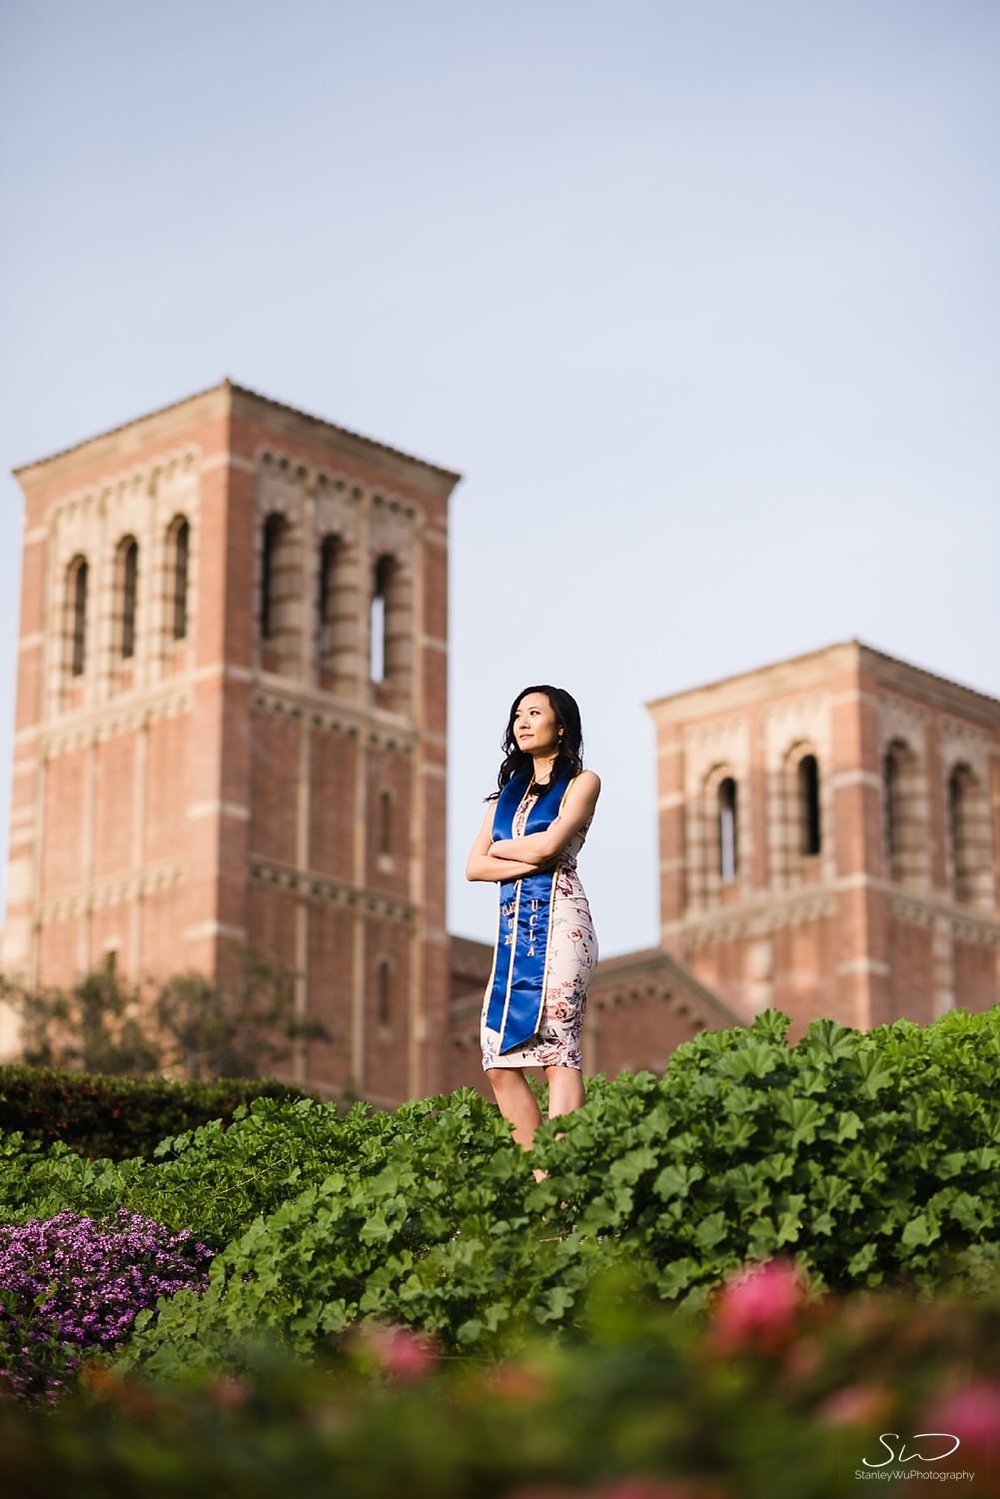 ucla-couple-session-graduation-senior-portraits_0020.jpg